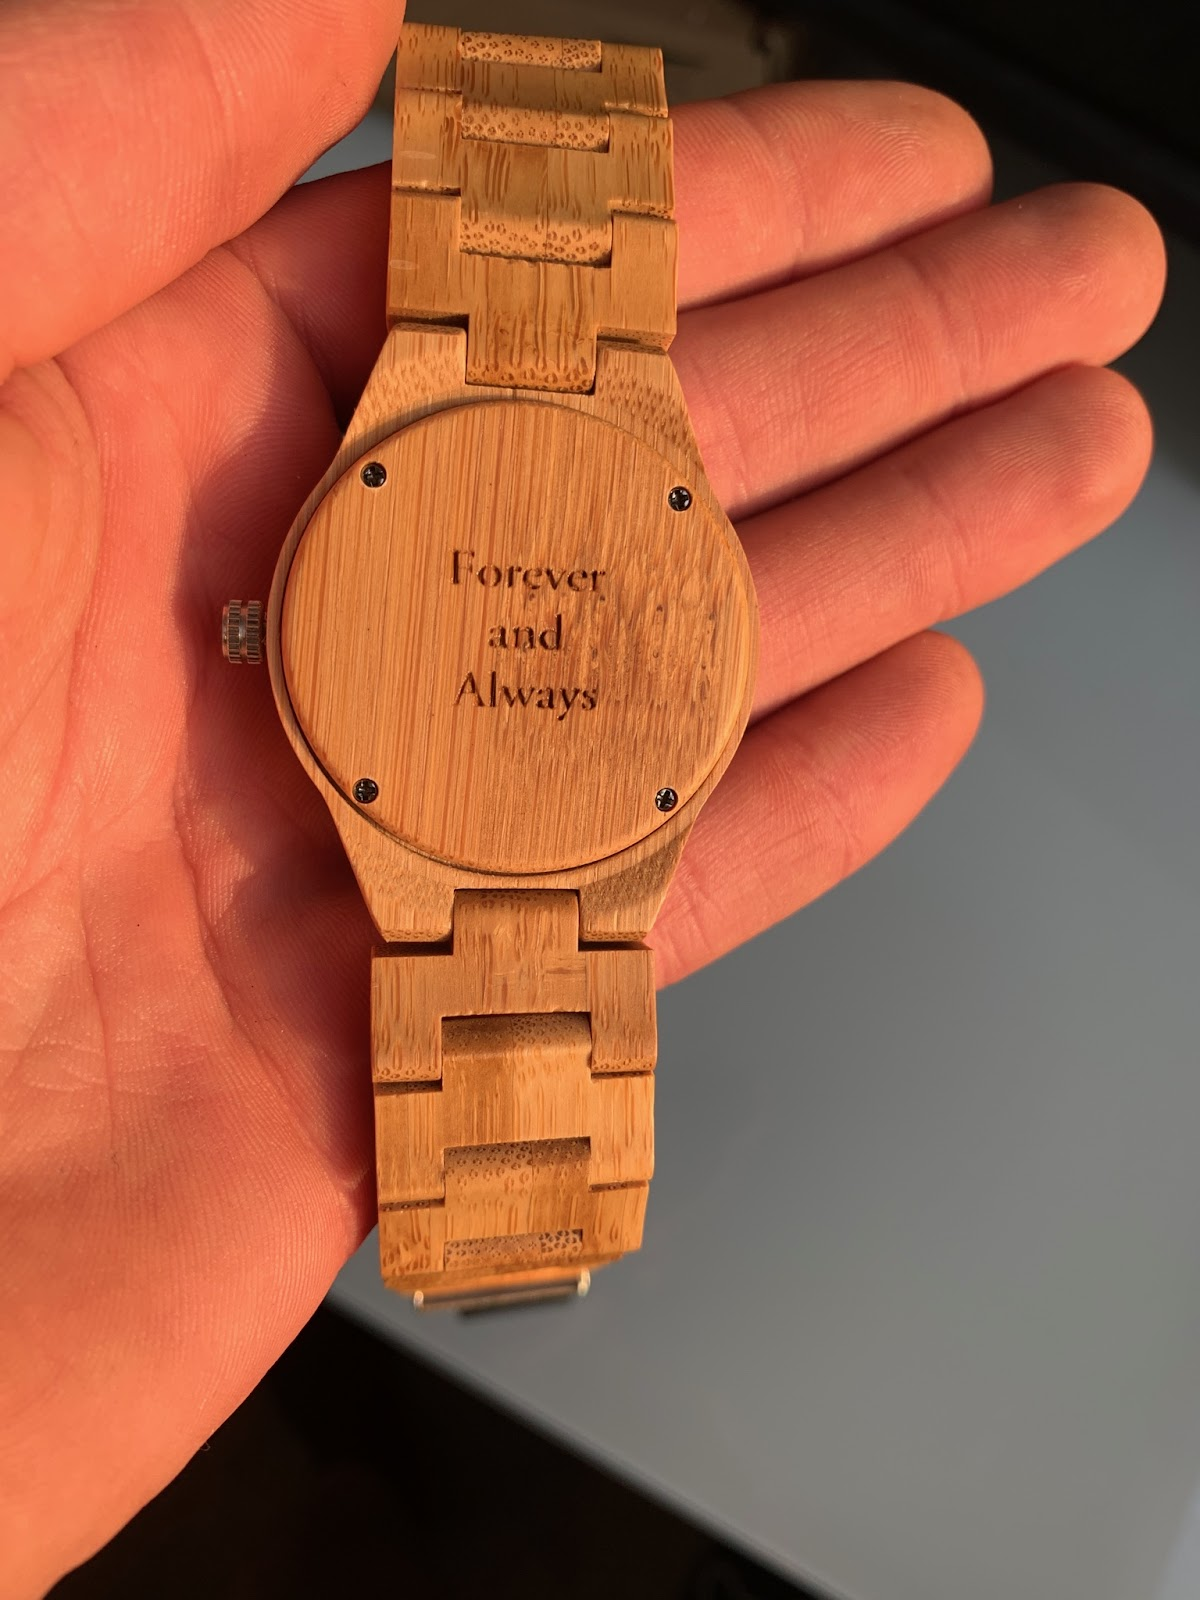 Wooden watch engraved with a quote saying Forever and Always.